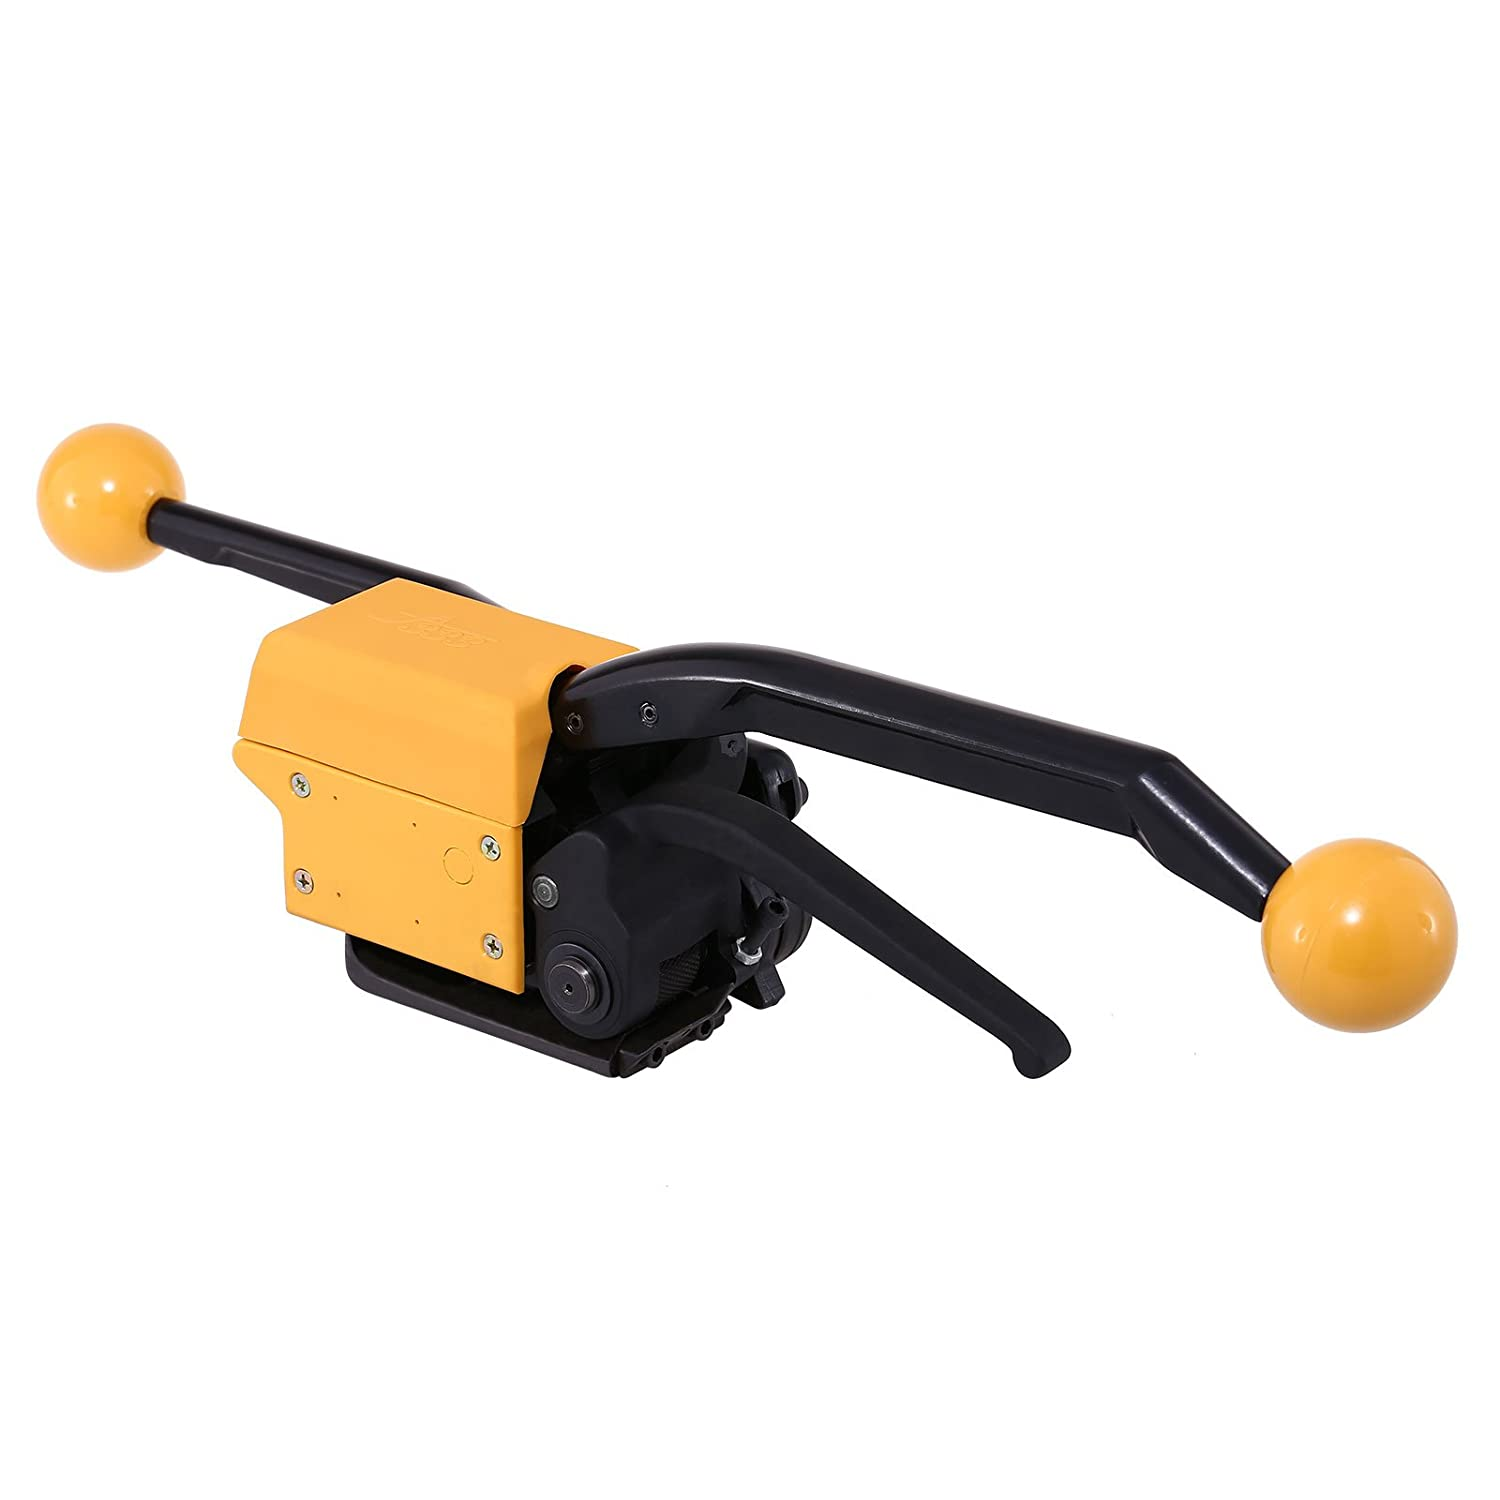 Mophorn Steel Strapping Tool A333 Manual Strapping Tool Portable Steel Straps Banding Sealless Combination Tool